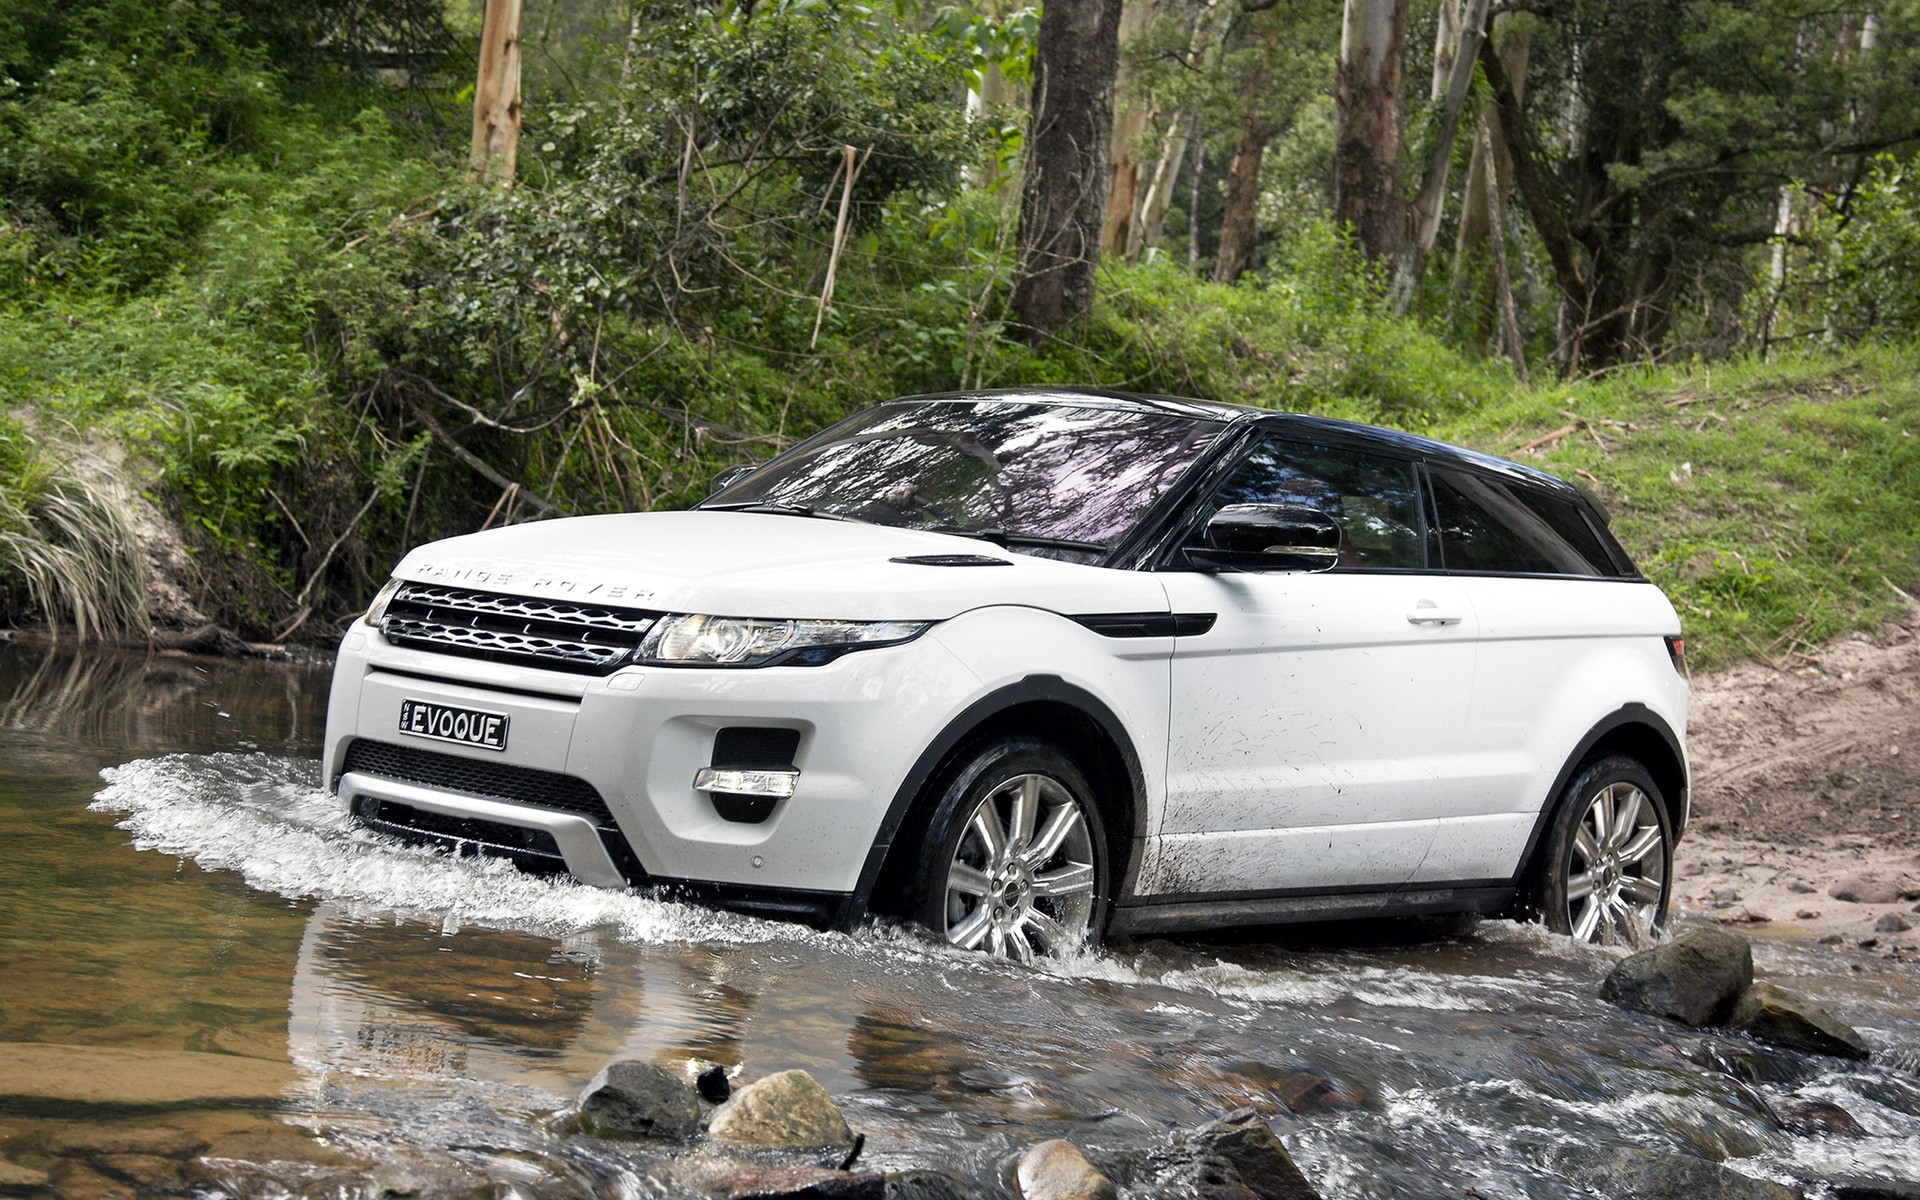 Range Rover Evog, water obstacles